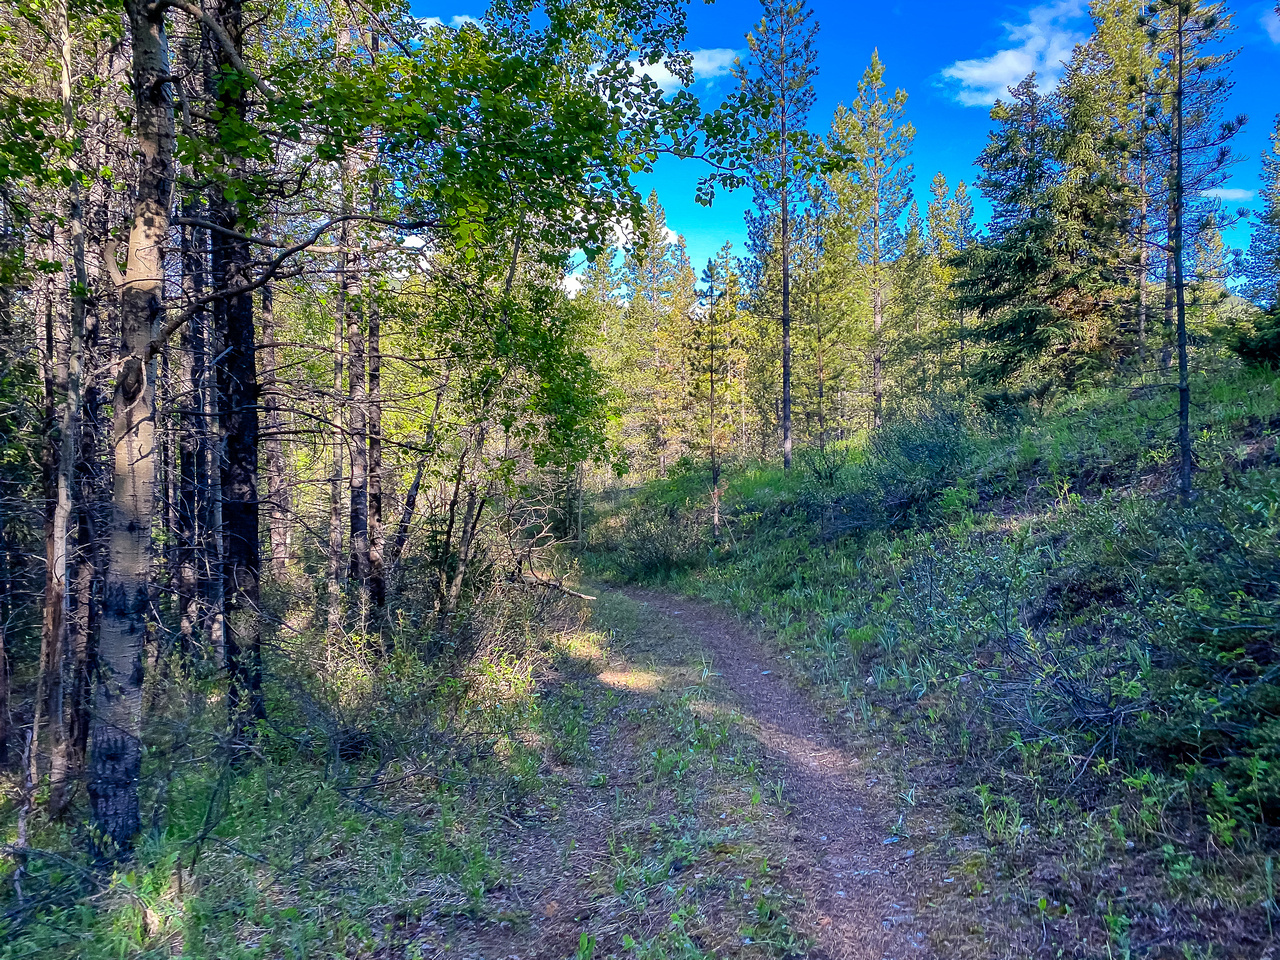 The trail along Baril Creek is a mix of pleasant and less pleasant biking / hiking.